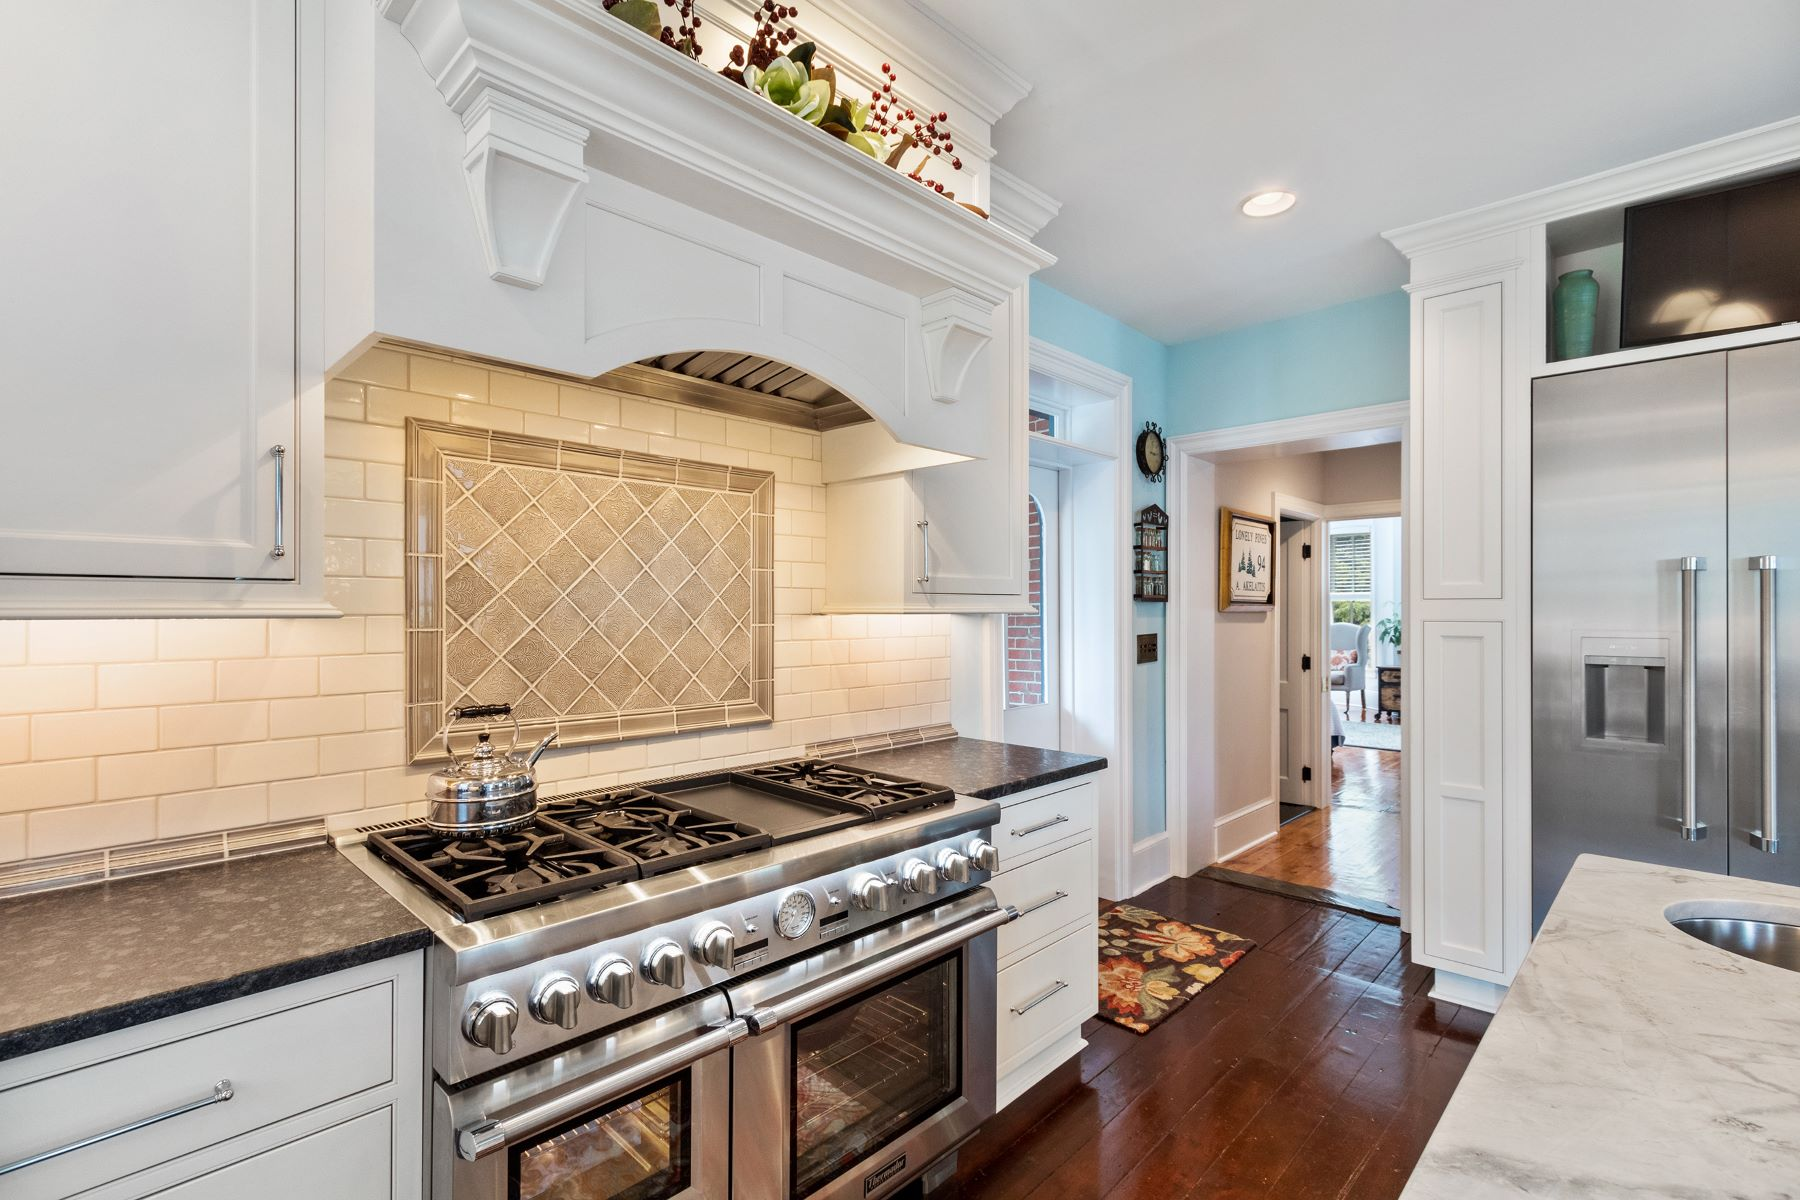 Additional photo for property listing at Sophisticated Victorian 22 Jefferson St, Lambertville, New Jersey 08530 United States